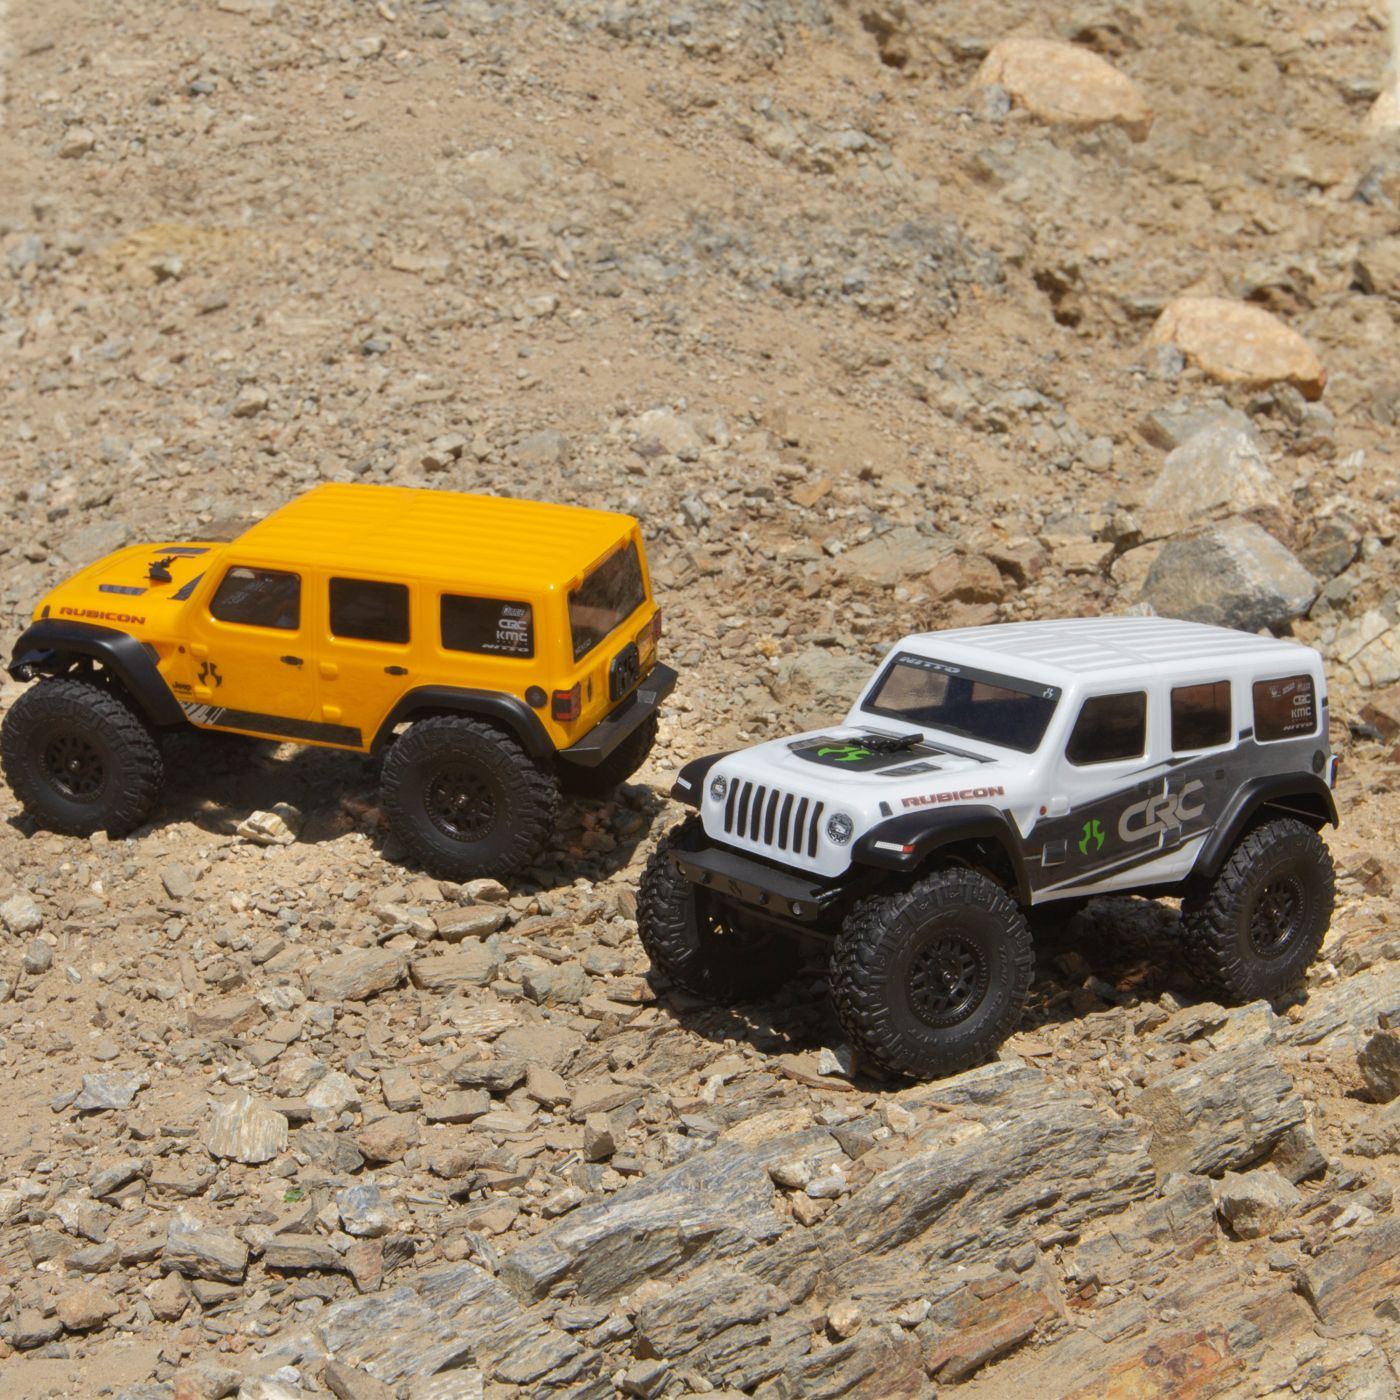 Axial Scx24 Jeep Wrangler 4x4 rtr scaler 1/24 04